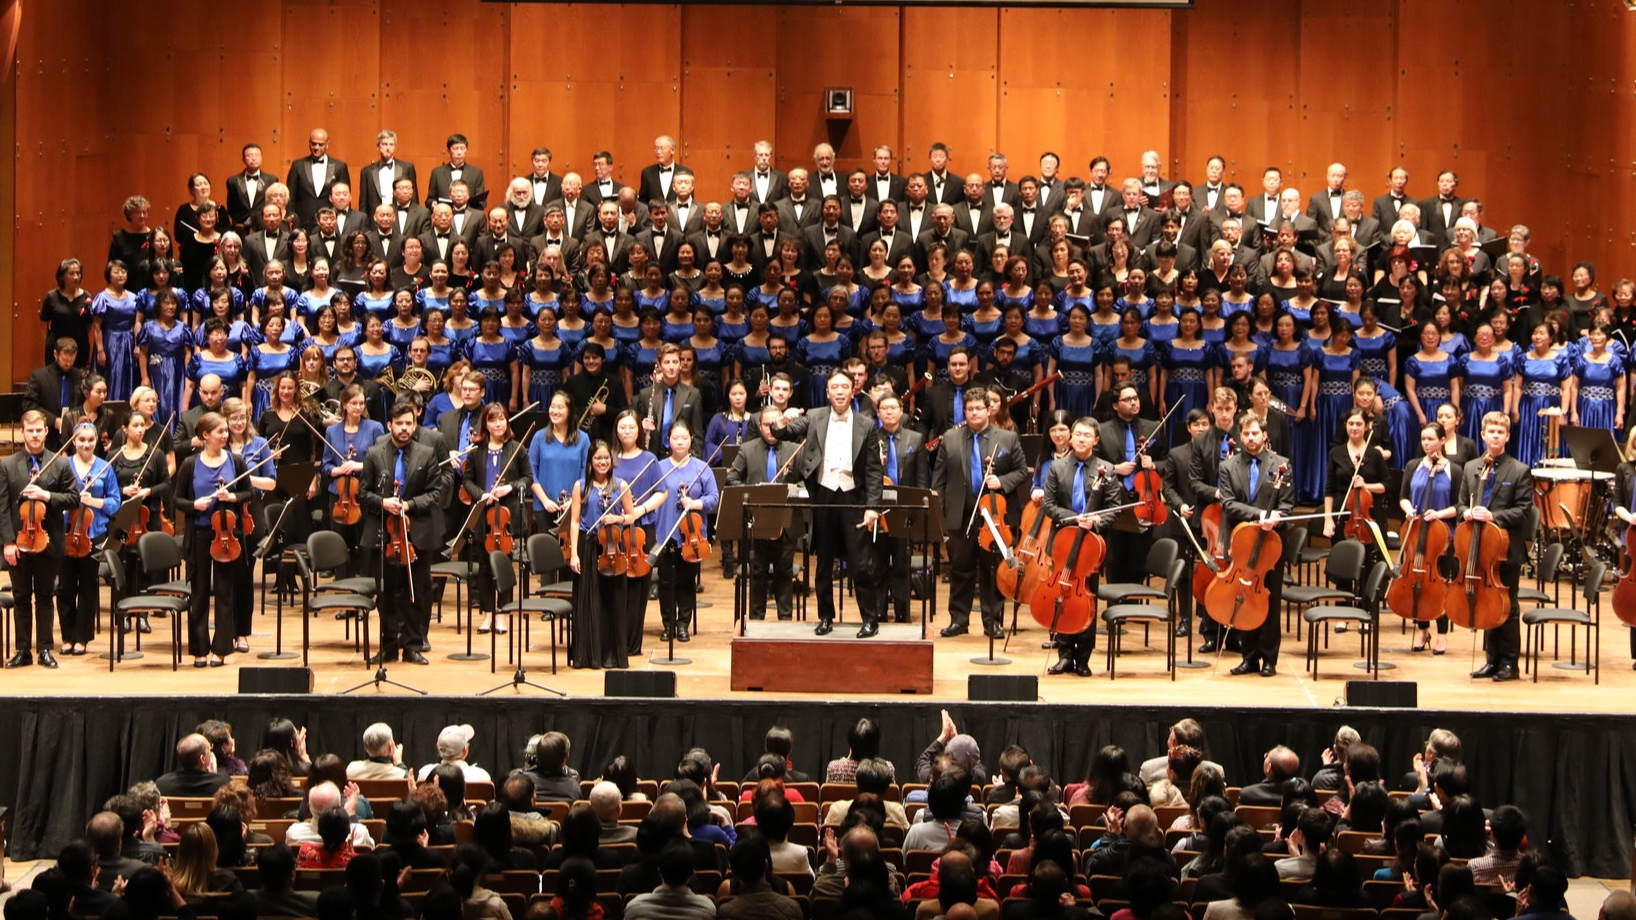 Jindong Cai, The Orchestra Now, and the China Now Festival Chorus. photo by Joe Zhou